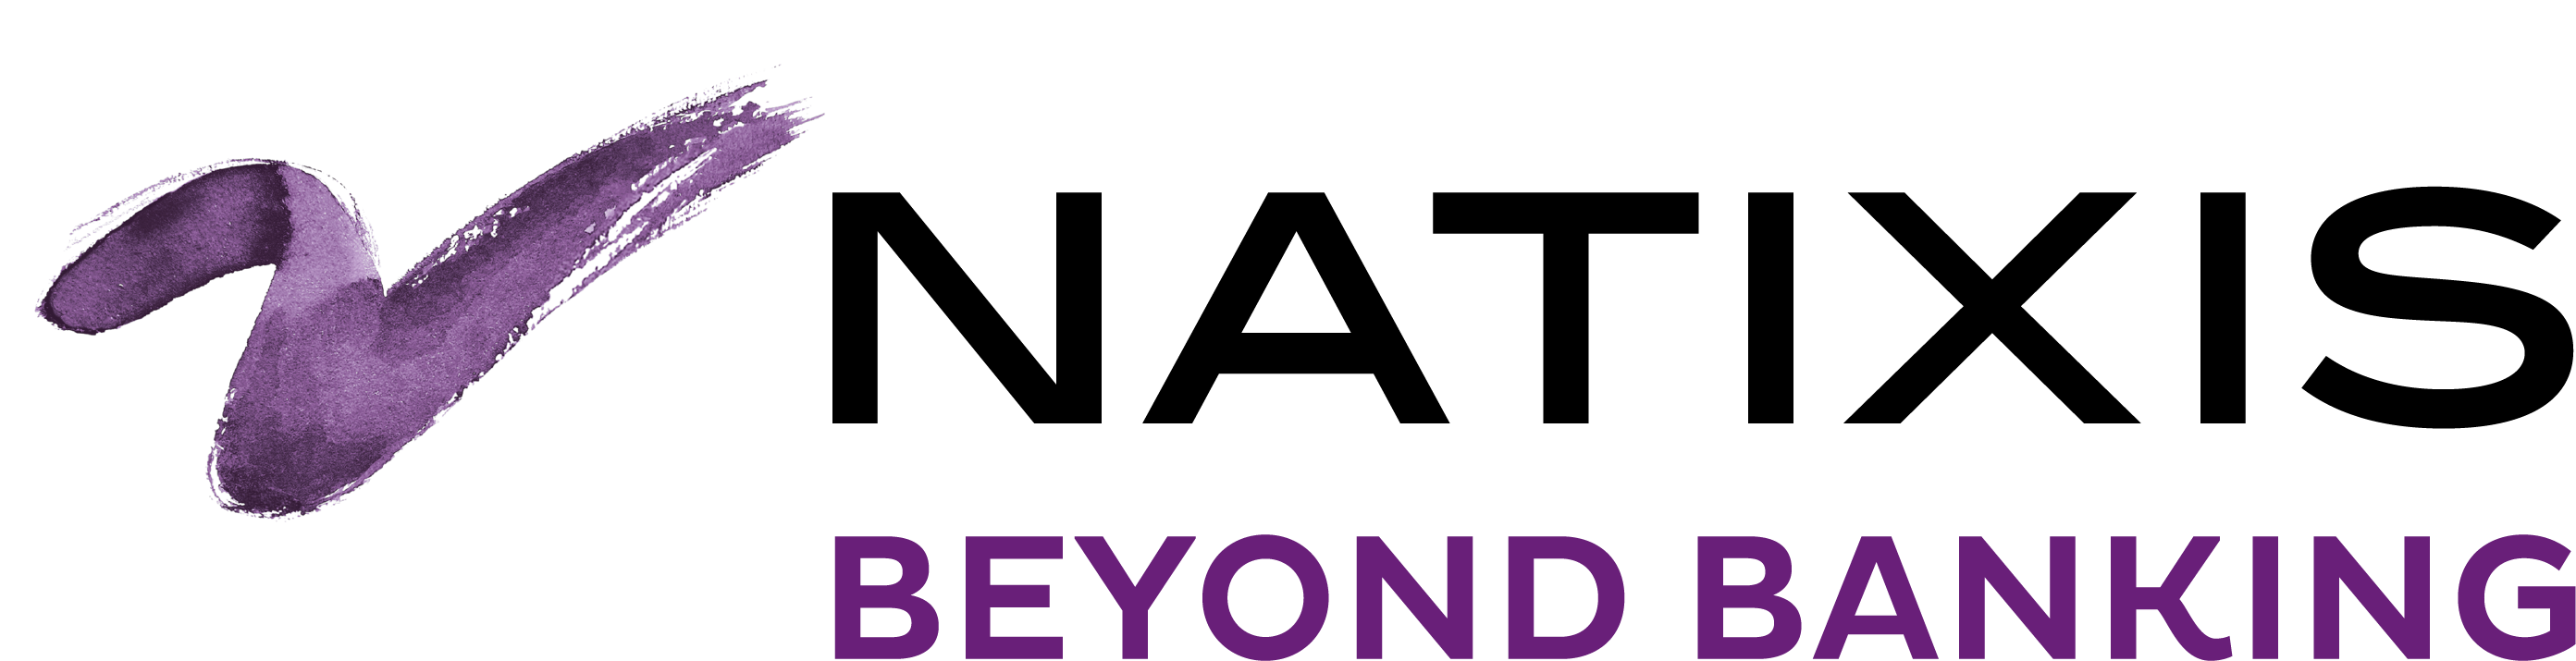 Natixis North America LLC